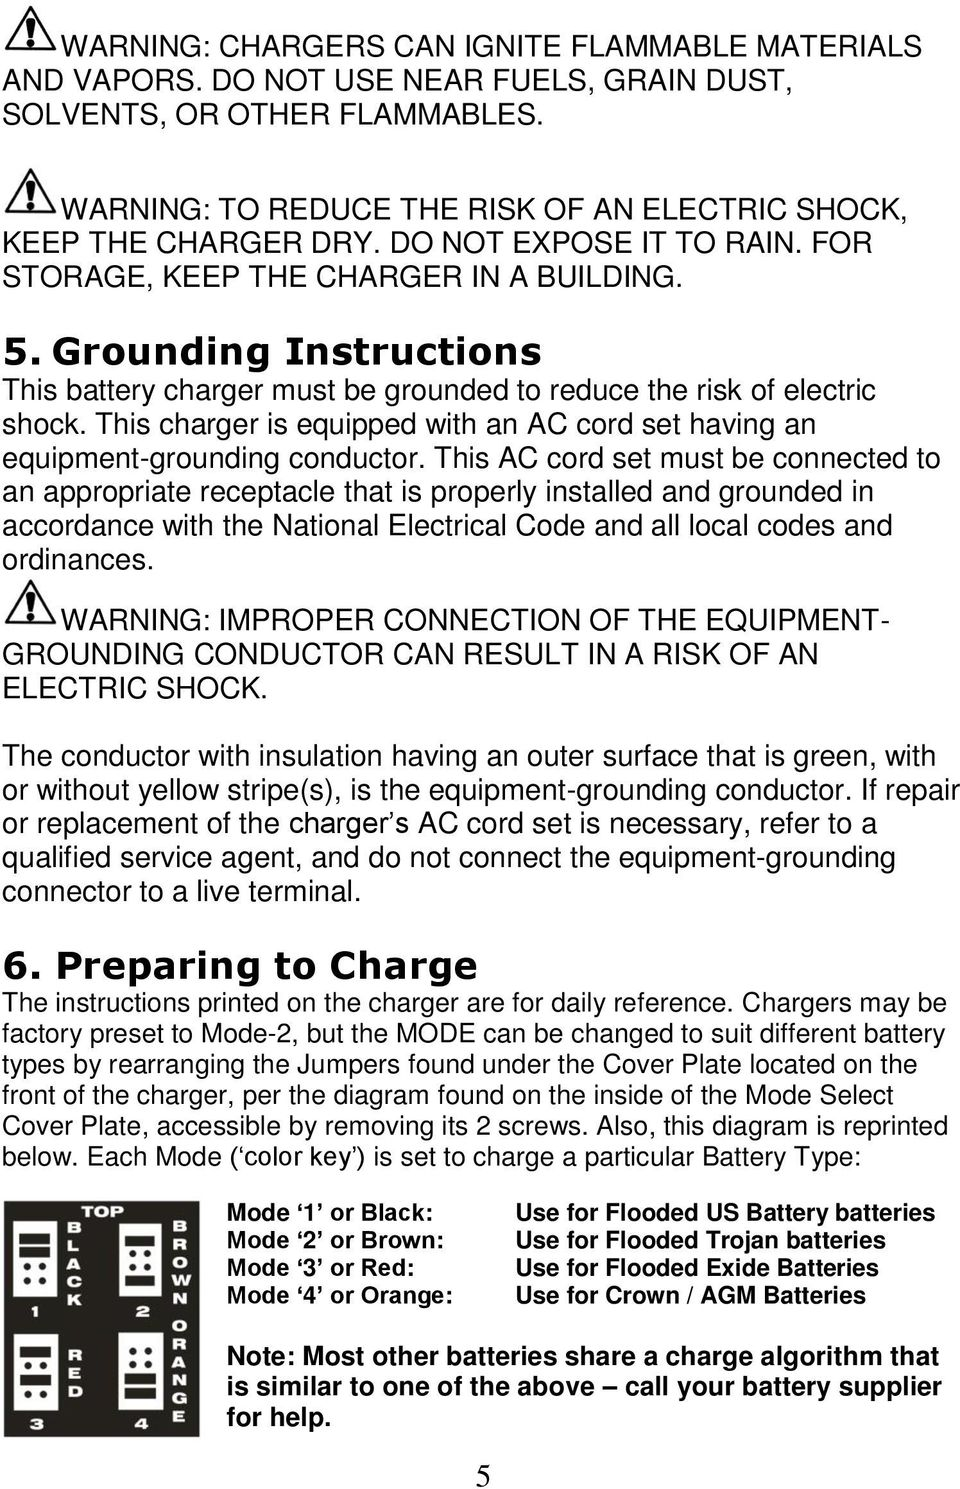 Accusense Charge Series On Off Board Fully Automatic Battery Charger Dpi 48v Wiring Diagram This Is Equipped With An Ac Cord Set Having Equipment Grounding Conductor